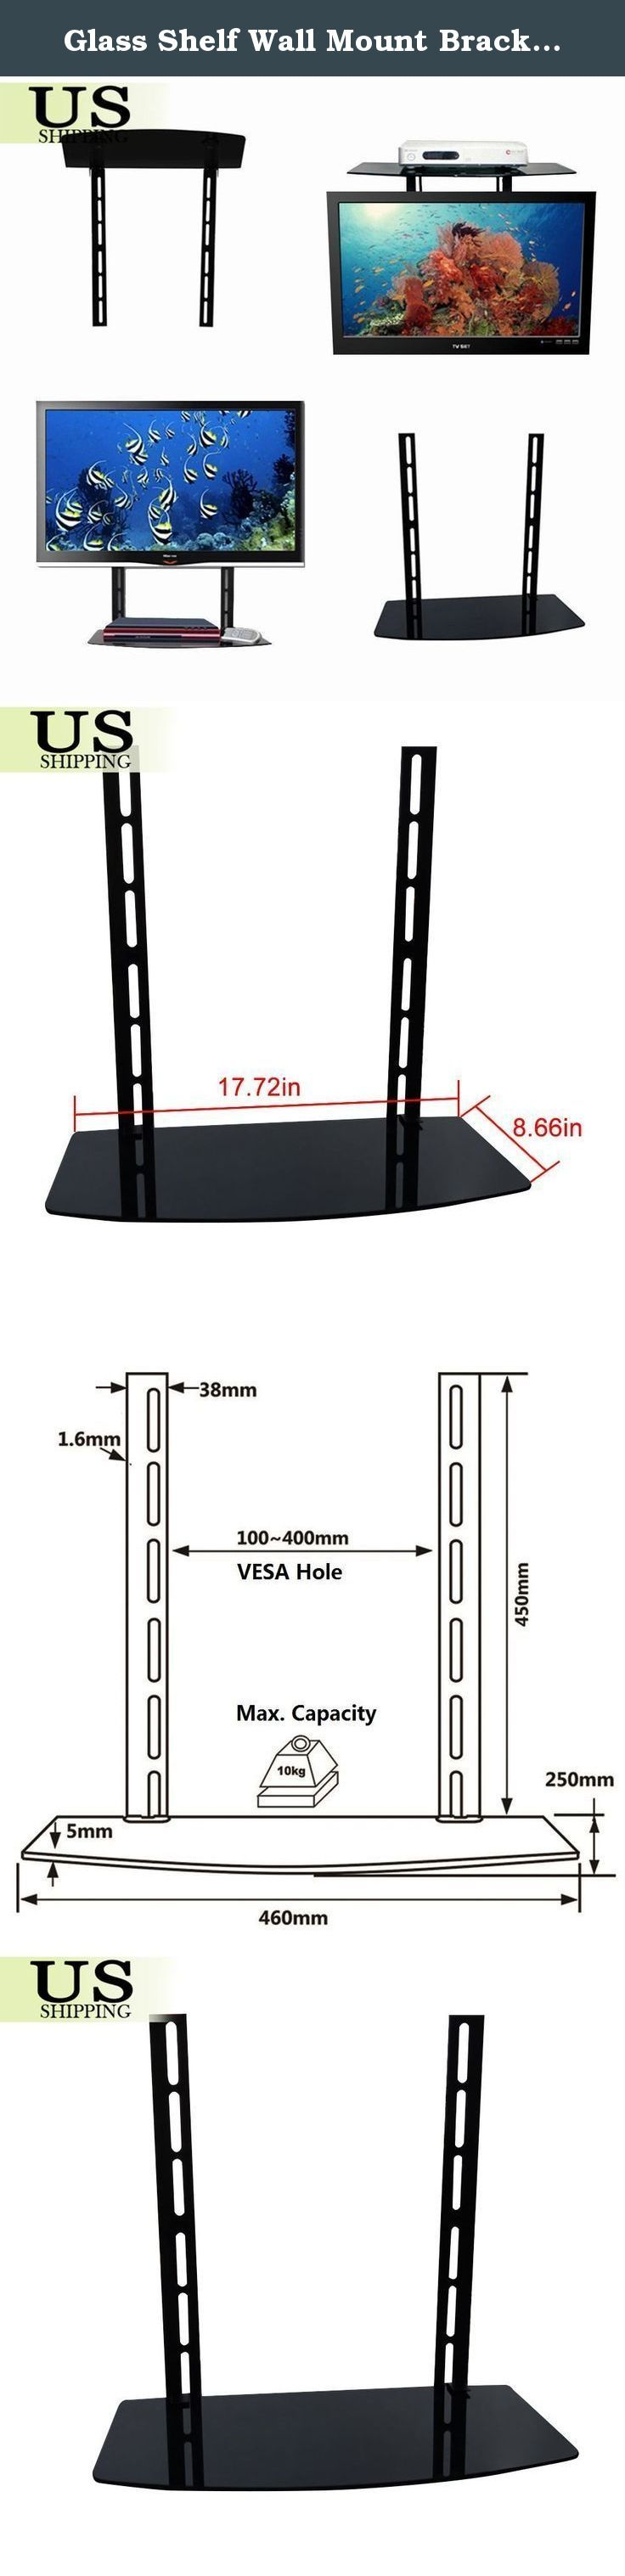 Glass Shelf Wall Mount Bracket Above Under TV Component Cable Box DVR DVD Stand. Specification: Material: 1.8mm Cold rolled plate steel + 5mm Tempered Glass. Load Capacity:30Lbs/13.8Kg. Max VESA for attachment: 400mmx400mm.